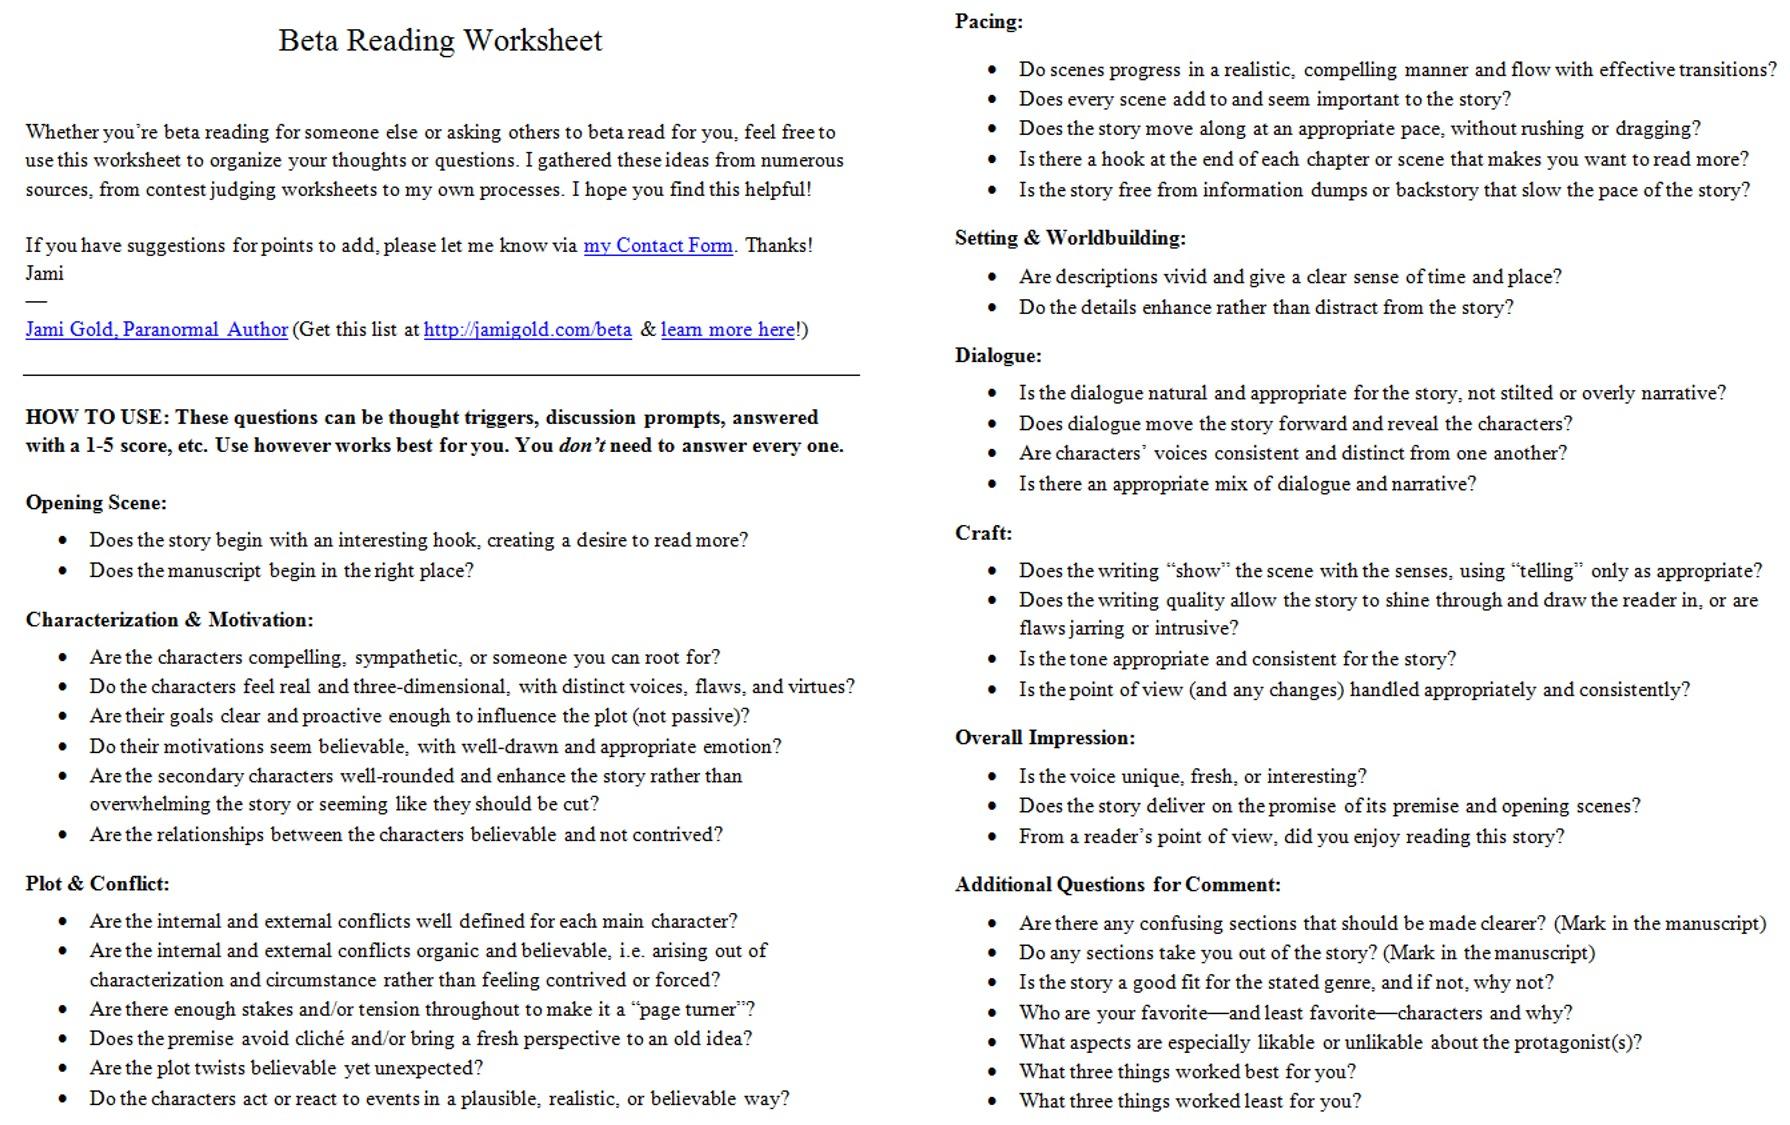 Aldiablosus  Winsome Worksheets For Writers  Jami Gold Paranormal Author With Foxy Screen Shot Of The Twopage Beta Reading Worksheet With Astonishing Canadian History Worksheets Also Worksheets For Multiplication And Division In Addition English Verb Conjugation Worksheets And Improper Fraction To Mixed Number Worksheets As Well As Personification Worksheets For Th Grade Additionally Free Maths Worksheets For Grade  From Jamigoldcom With Aldiablosus  Foxy Worksheets For Writers  Jami Gold Paranormal Author With Astonishing Screen Shot Of The Twopage Beta Reading Worksheet And Winsome Canadian History Worksheets Also Worksheets For Multiplication And Division In Addition English Verb Conjugation Worksheets From Jamigoldcom